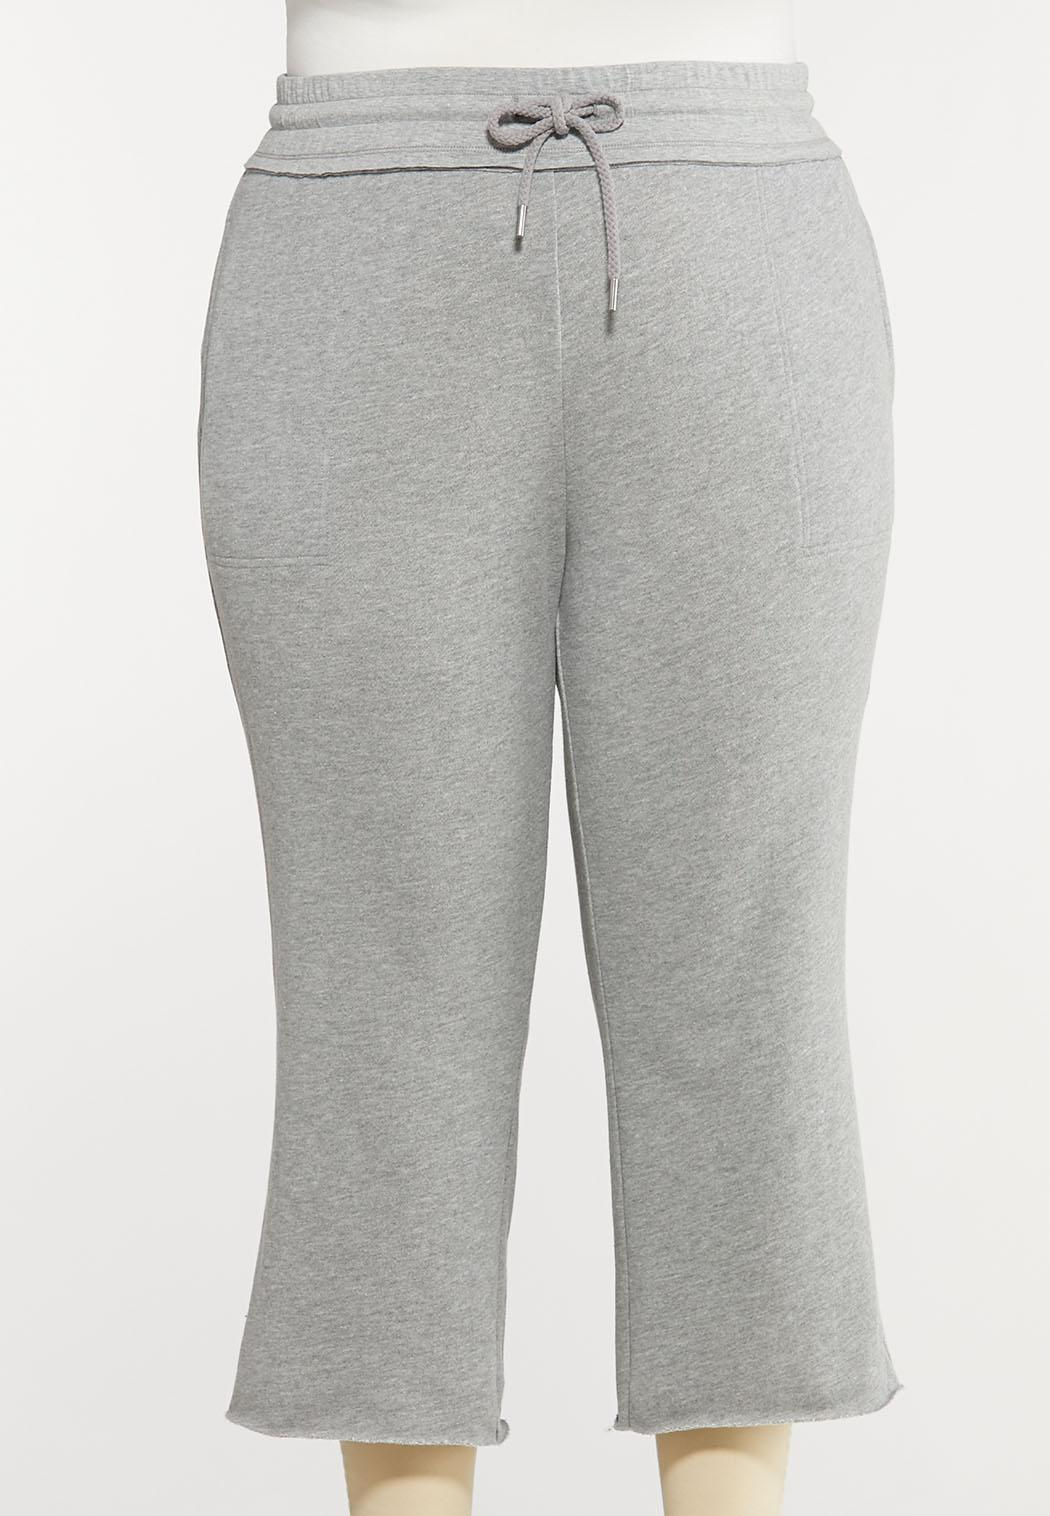 Plus Size Gray Cropped Athleisure Pants